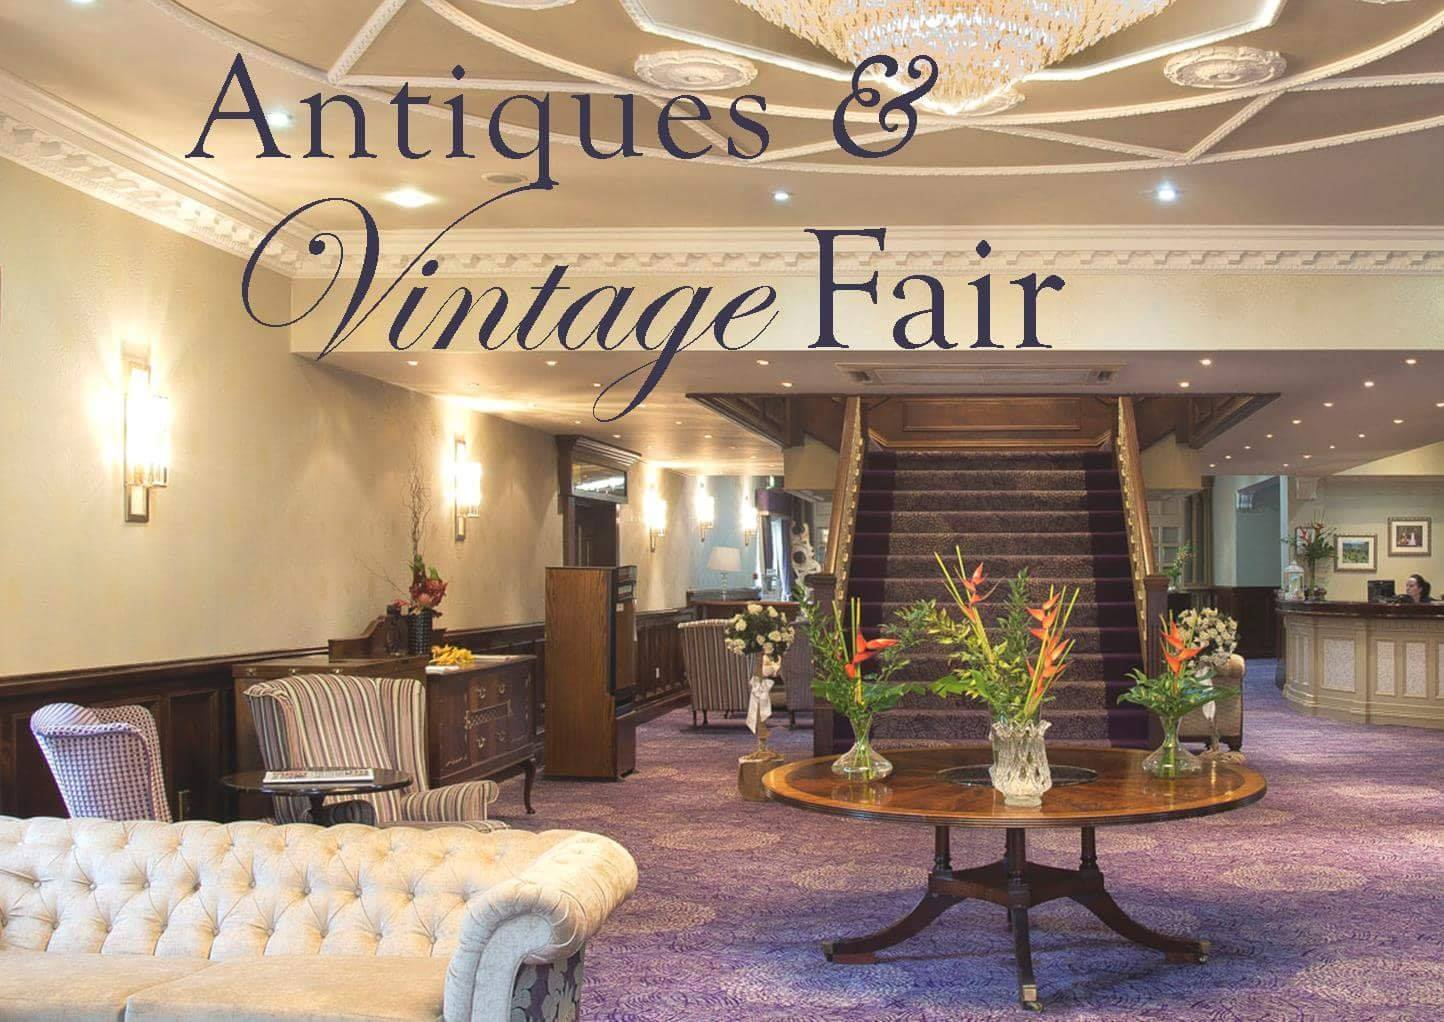 """Image shows a warm and plush hotel interior, namely that of the Woodford Dolmen Hotel in Carlow, Ireland. Superimposed on the image is the text """"Antiques & Vintage Fair"""" in reference to the events held there by vintageireland.eu"""